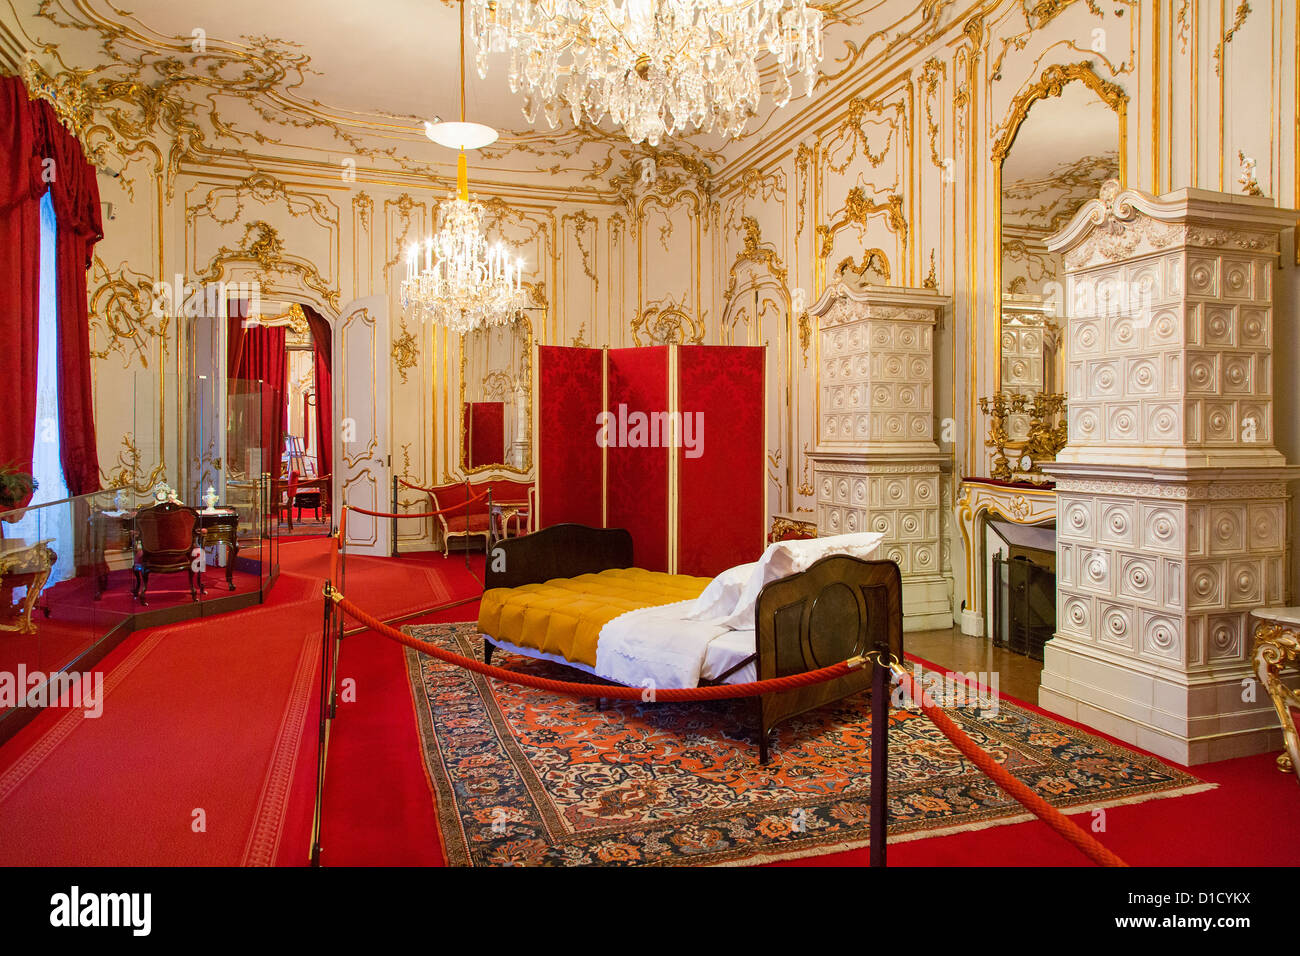 Captivating Private Royal Apartments In The Hofburg Palace, Vienna, Austria